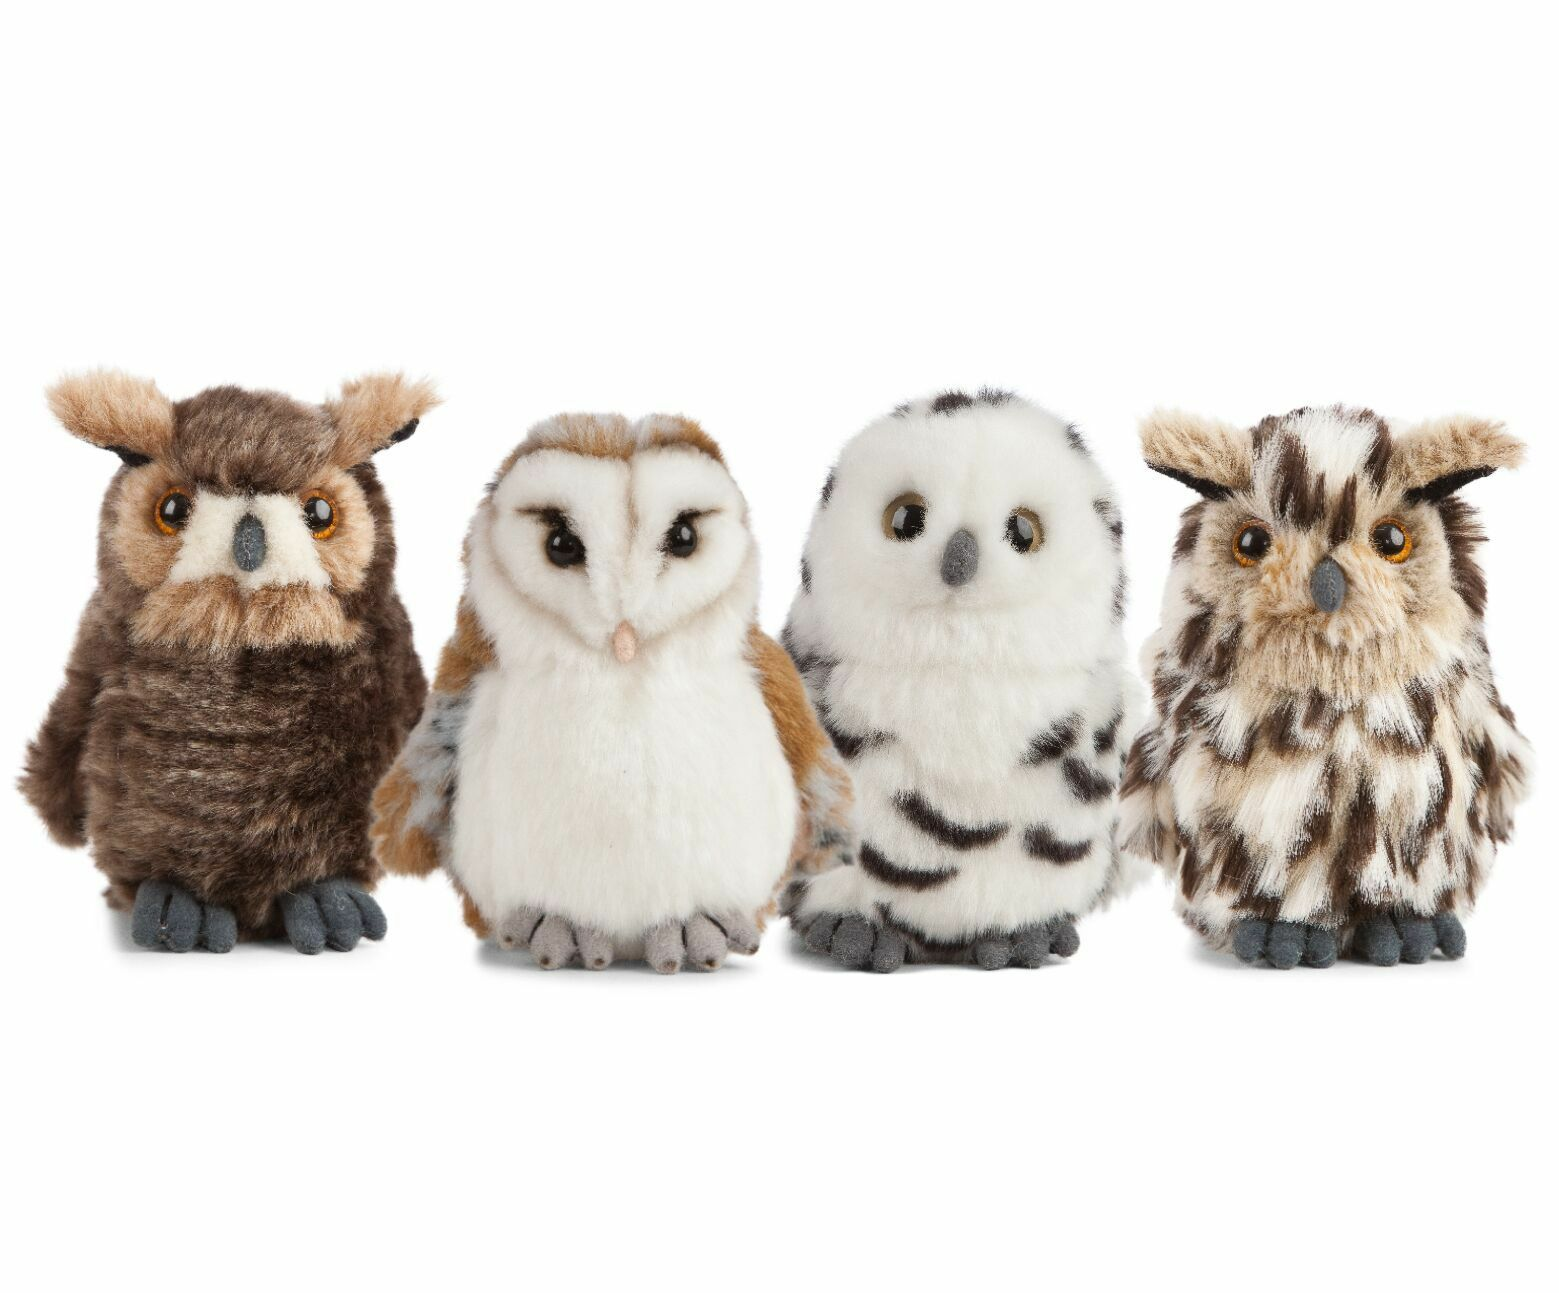 LIVING NATURE OWLS 4 ASSORTED - AN406 SOFT CUDDLY PLUSH STUFFED REALISTIC BIRD